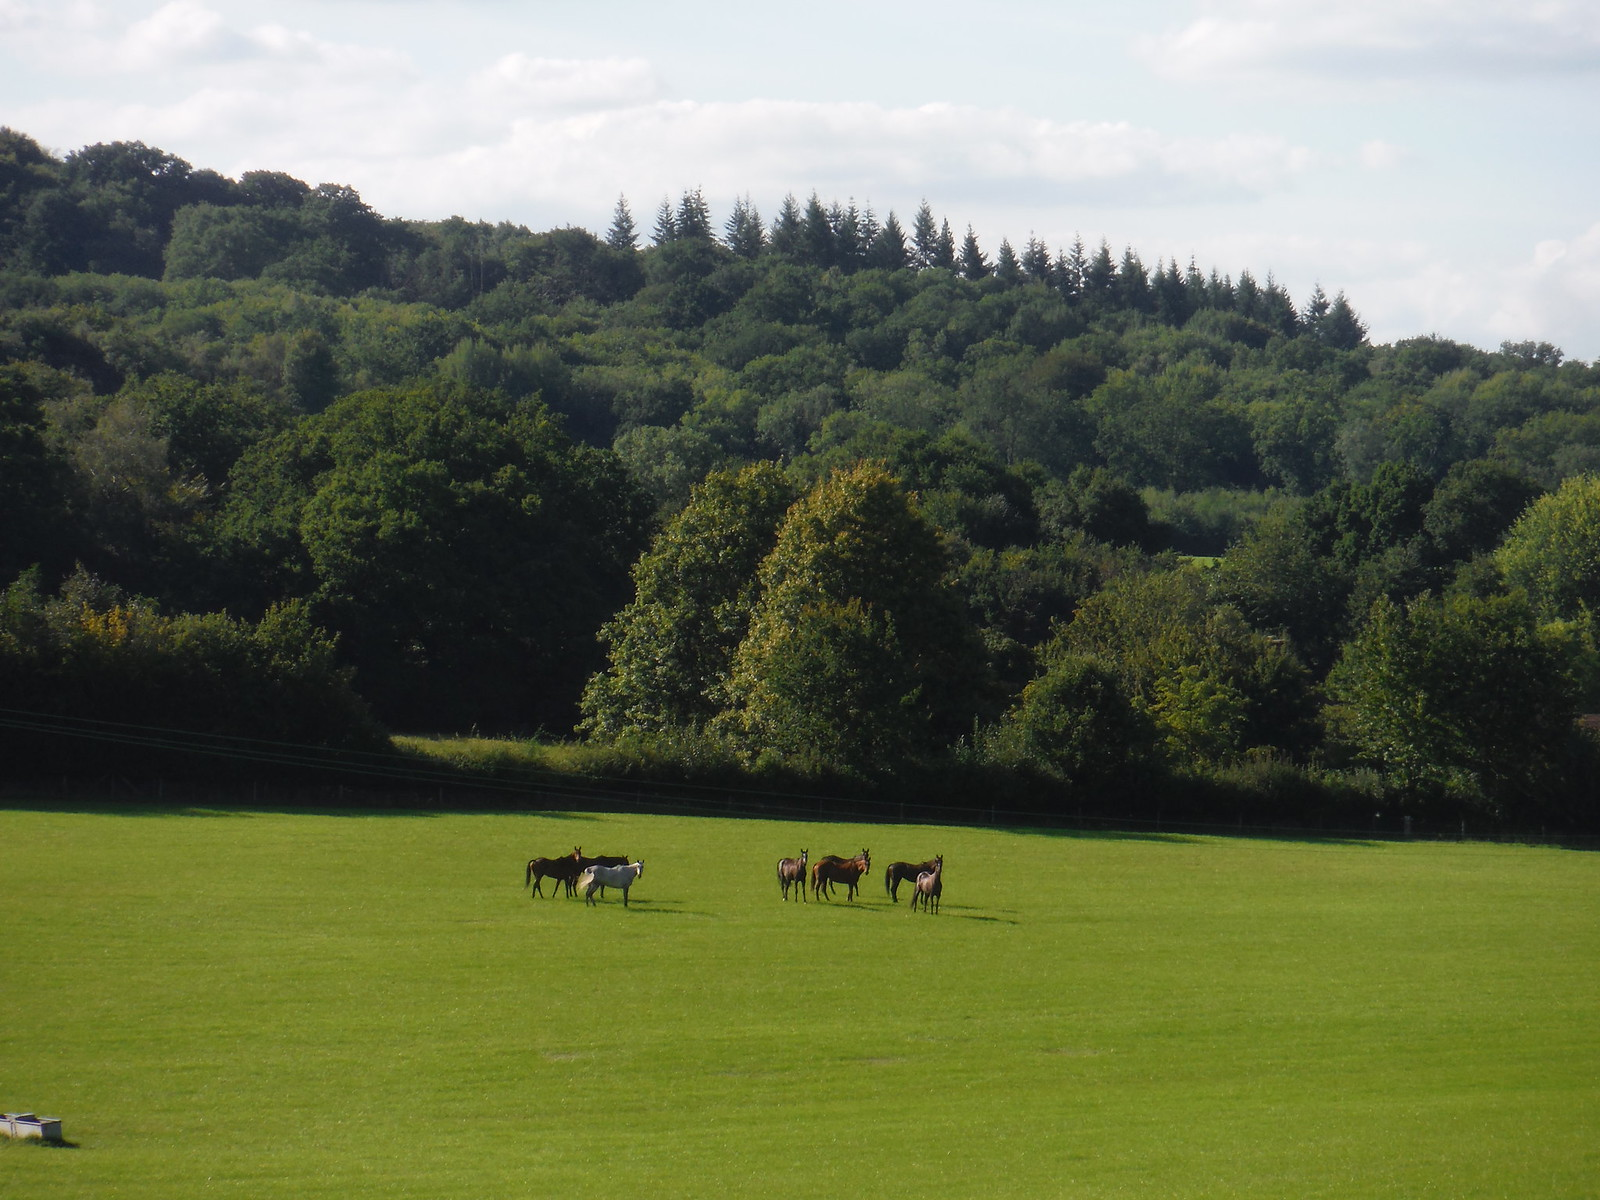 Horses in Field, near Snapelands Copse SWC Walk 294 - Pulborough to Halfway Bridge (via Tillington)